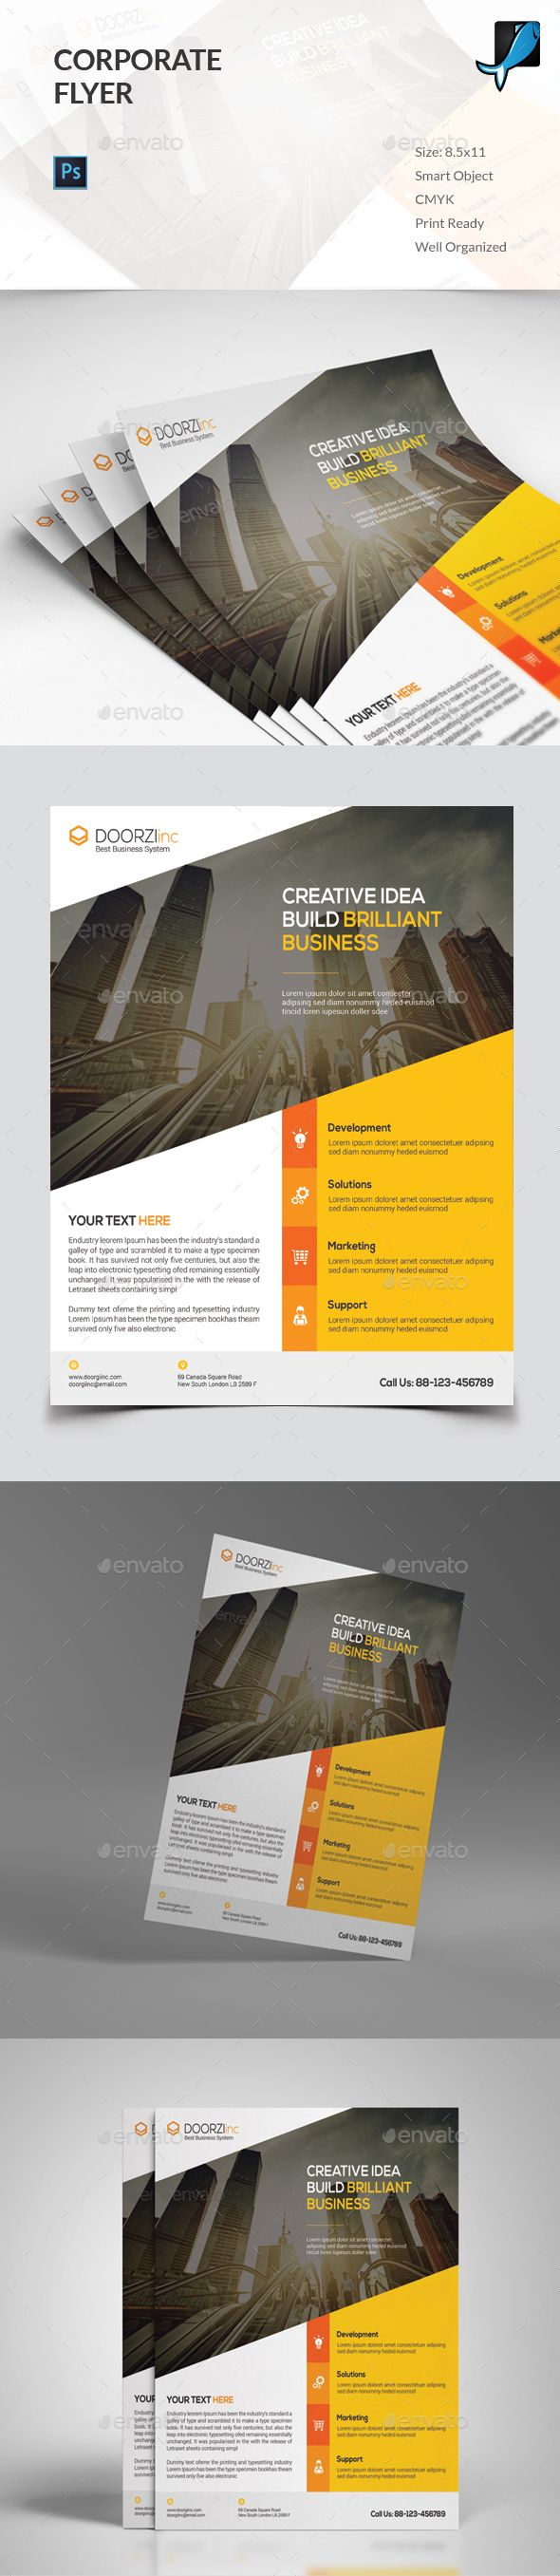 Corporate Flyer Template PSD #design Download: http://graphicriver.net/item/corporate-flyer/13578914?ref=ksioks